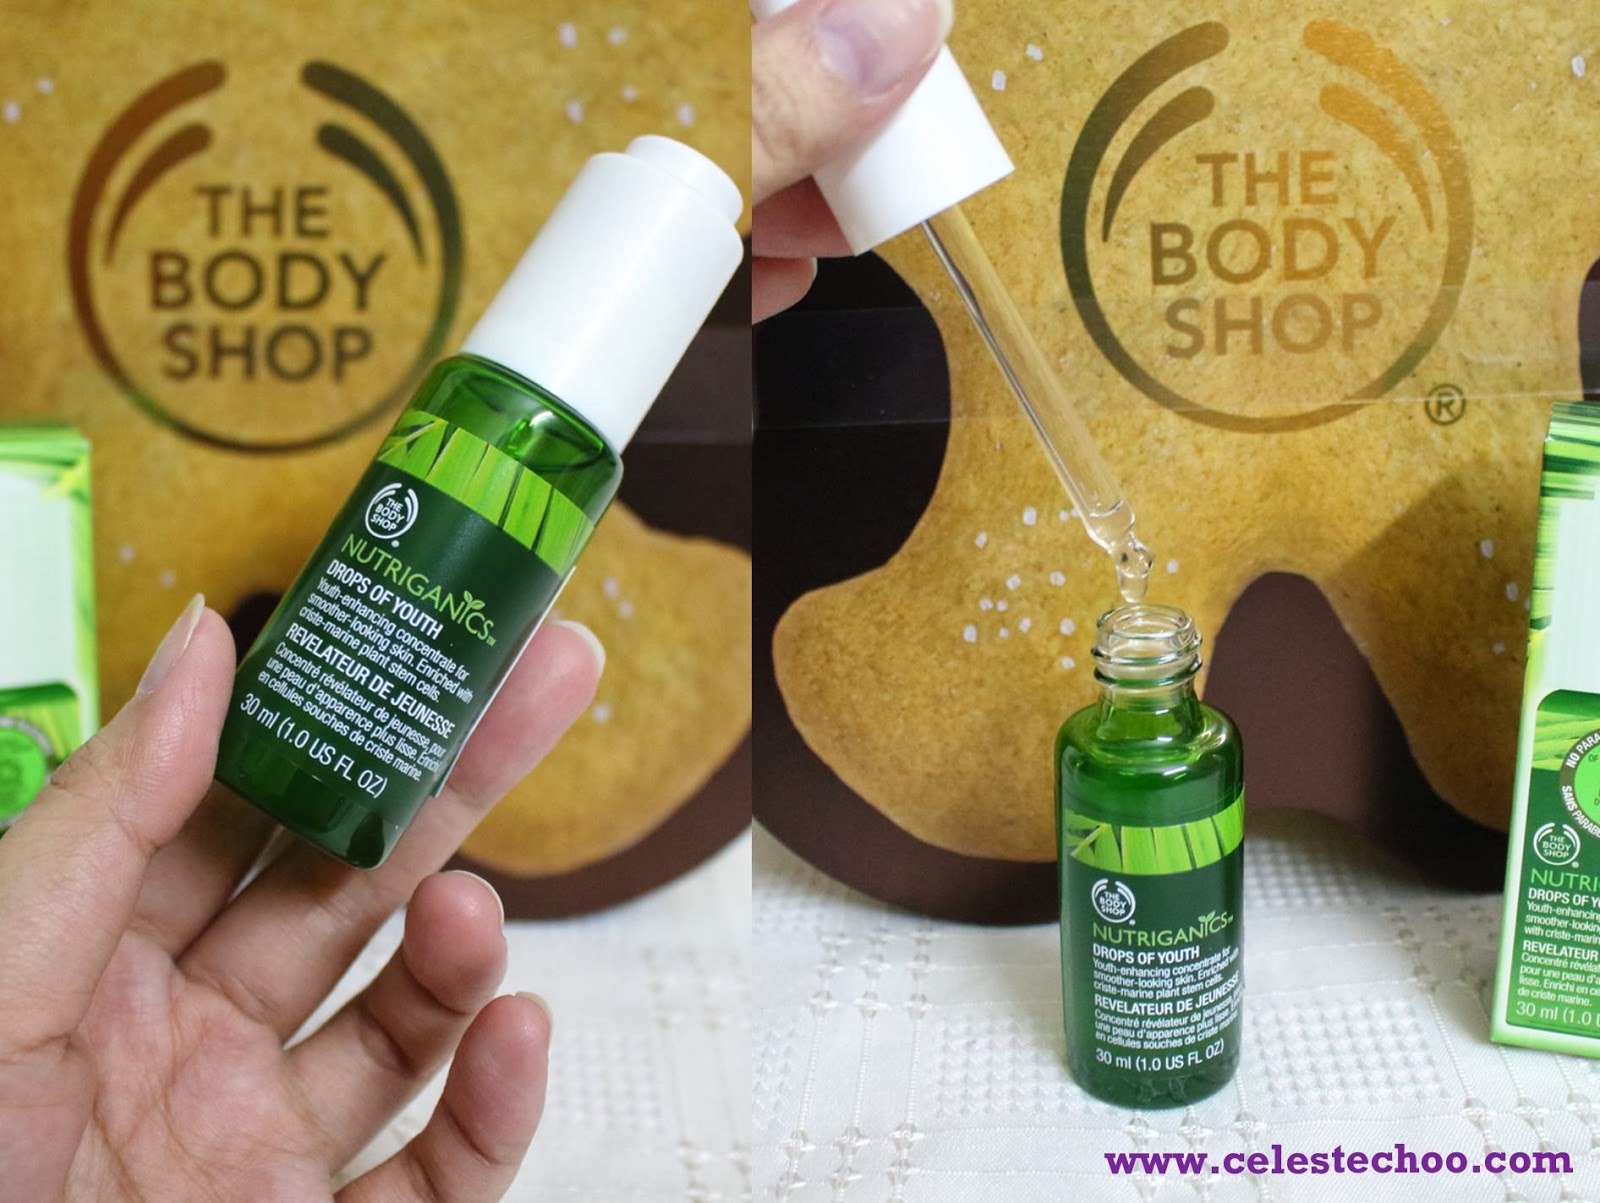 the-body-shop-nutriganics-drops-of-youth